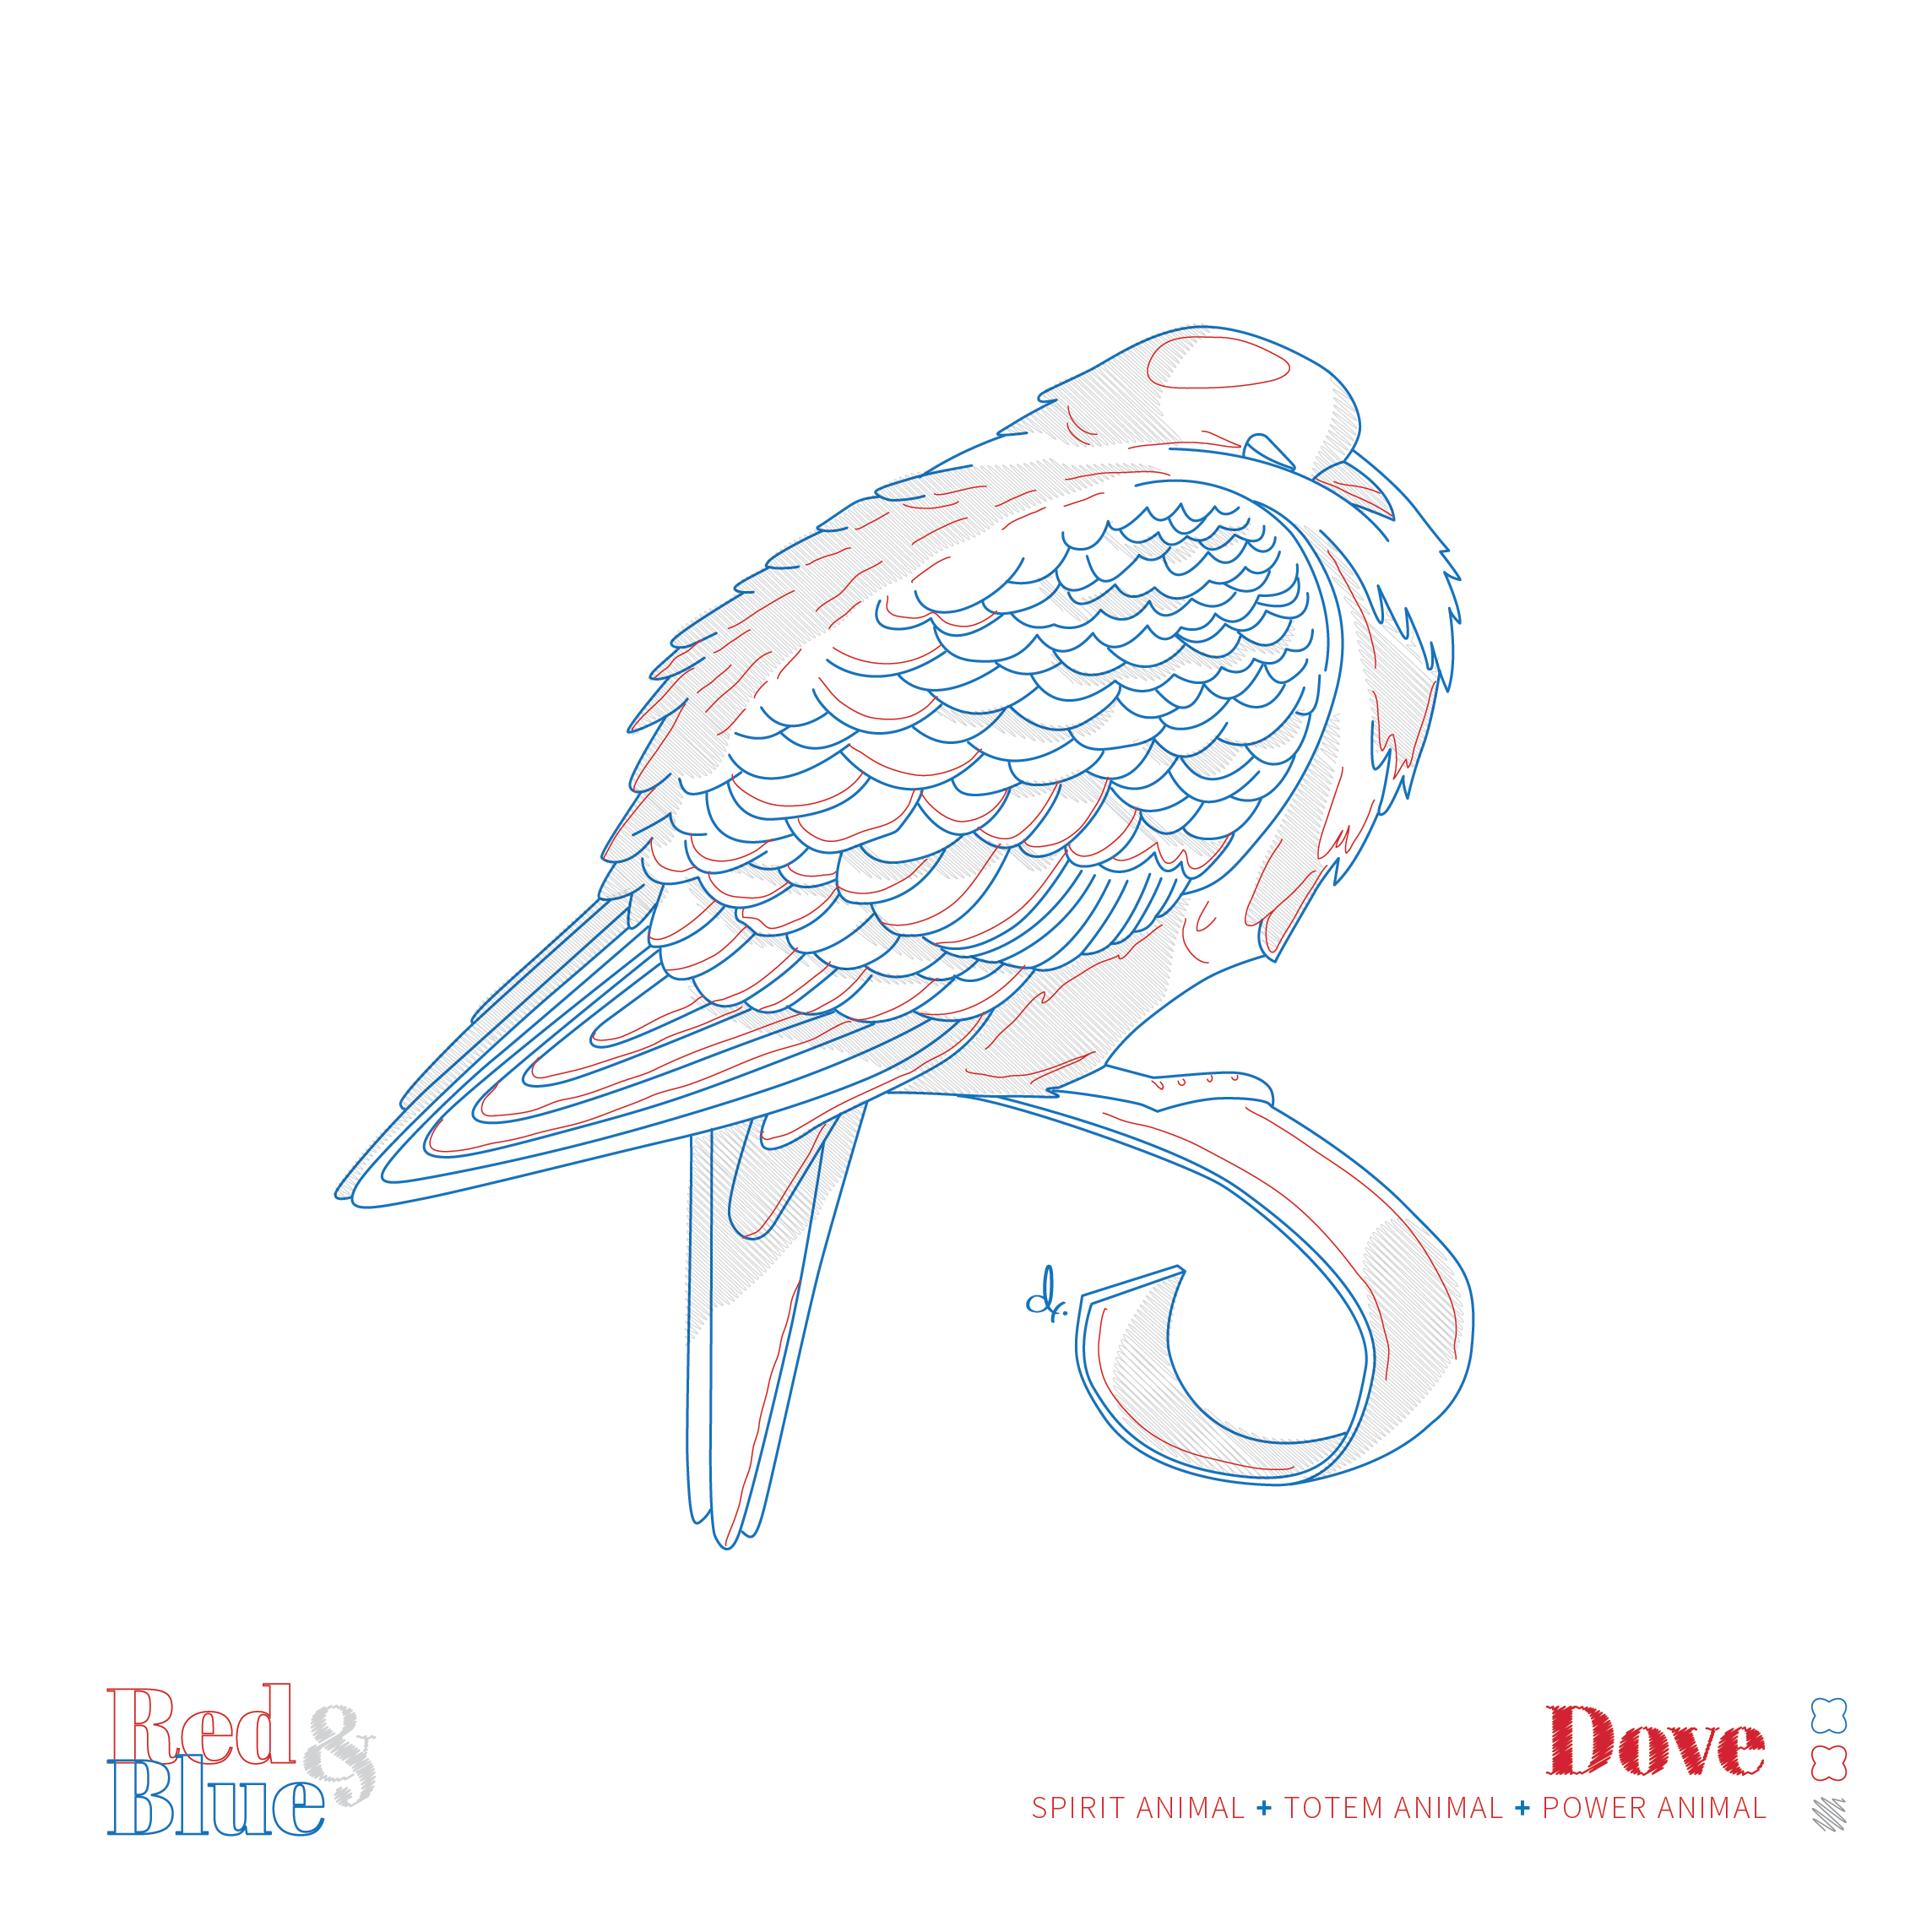 Dove Red and Blue Symbolism and Meaning